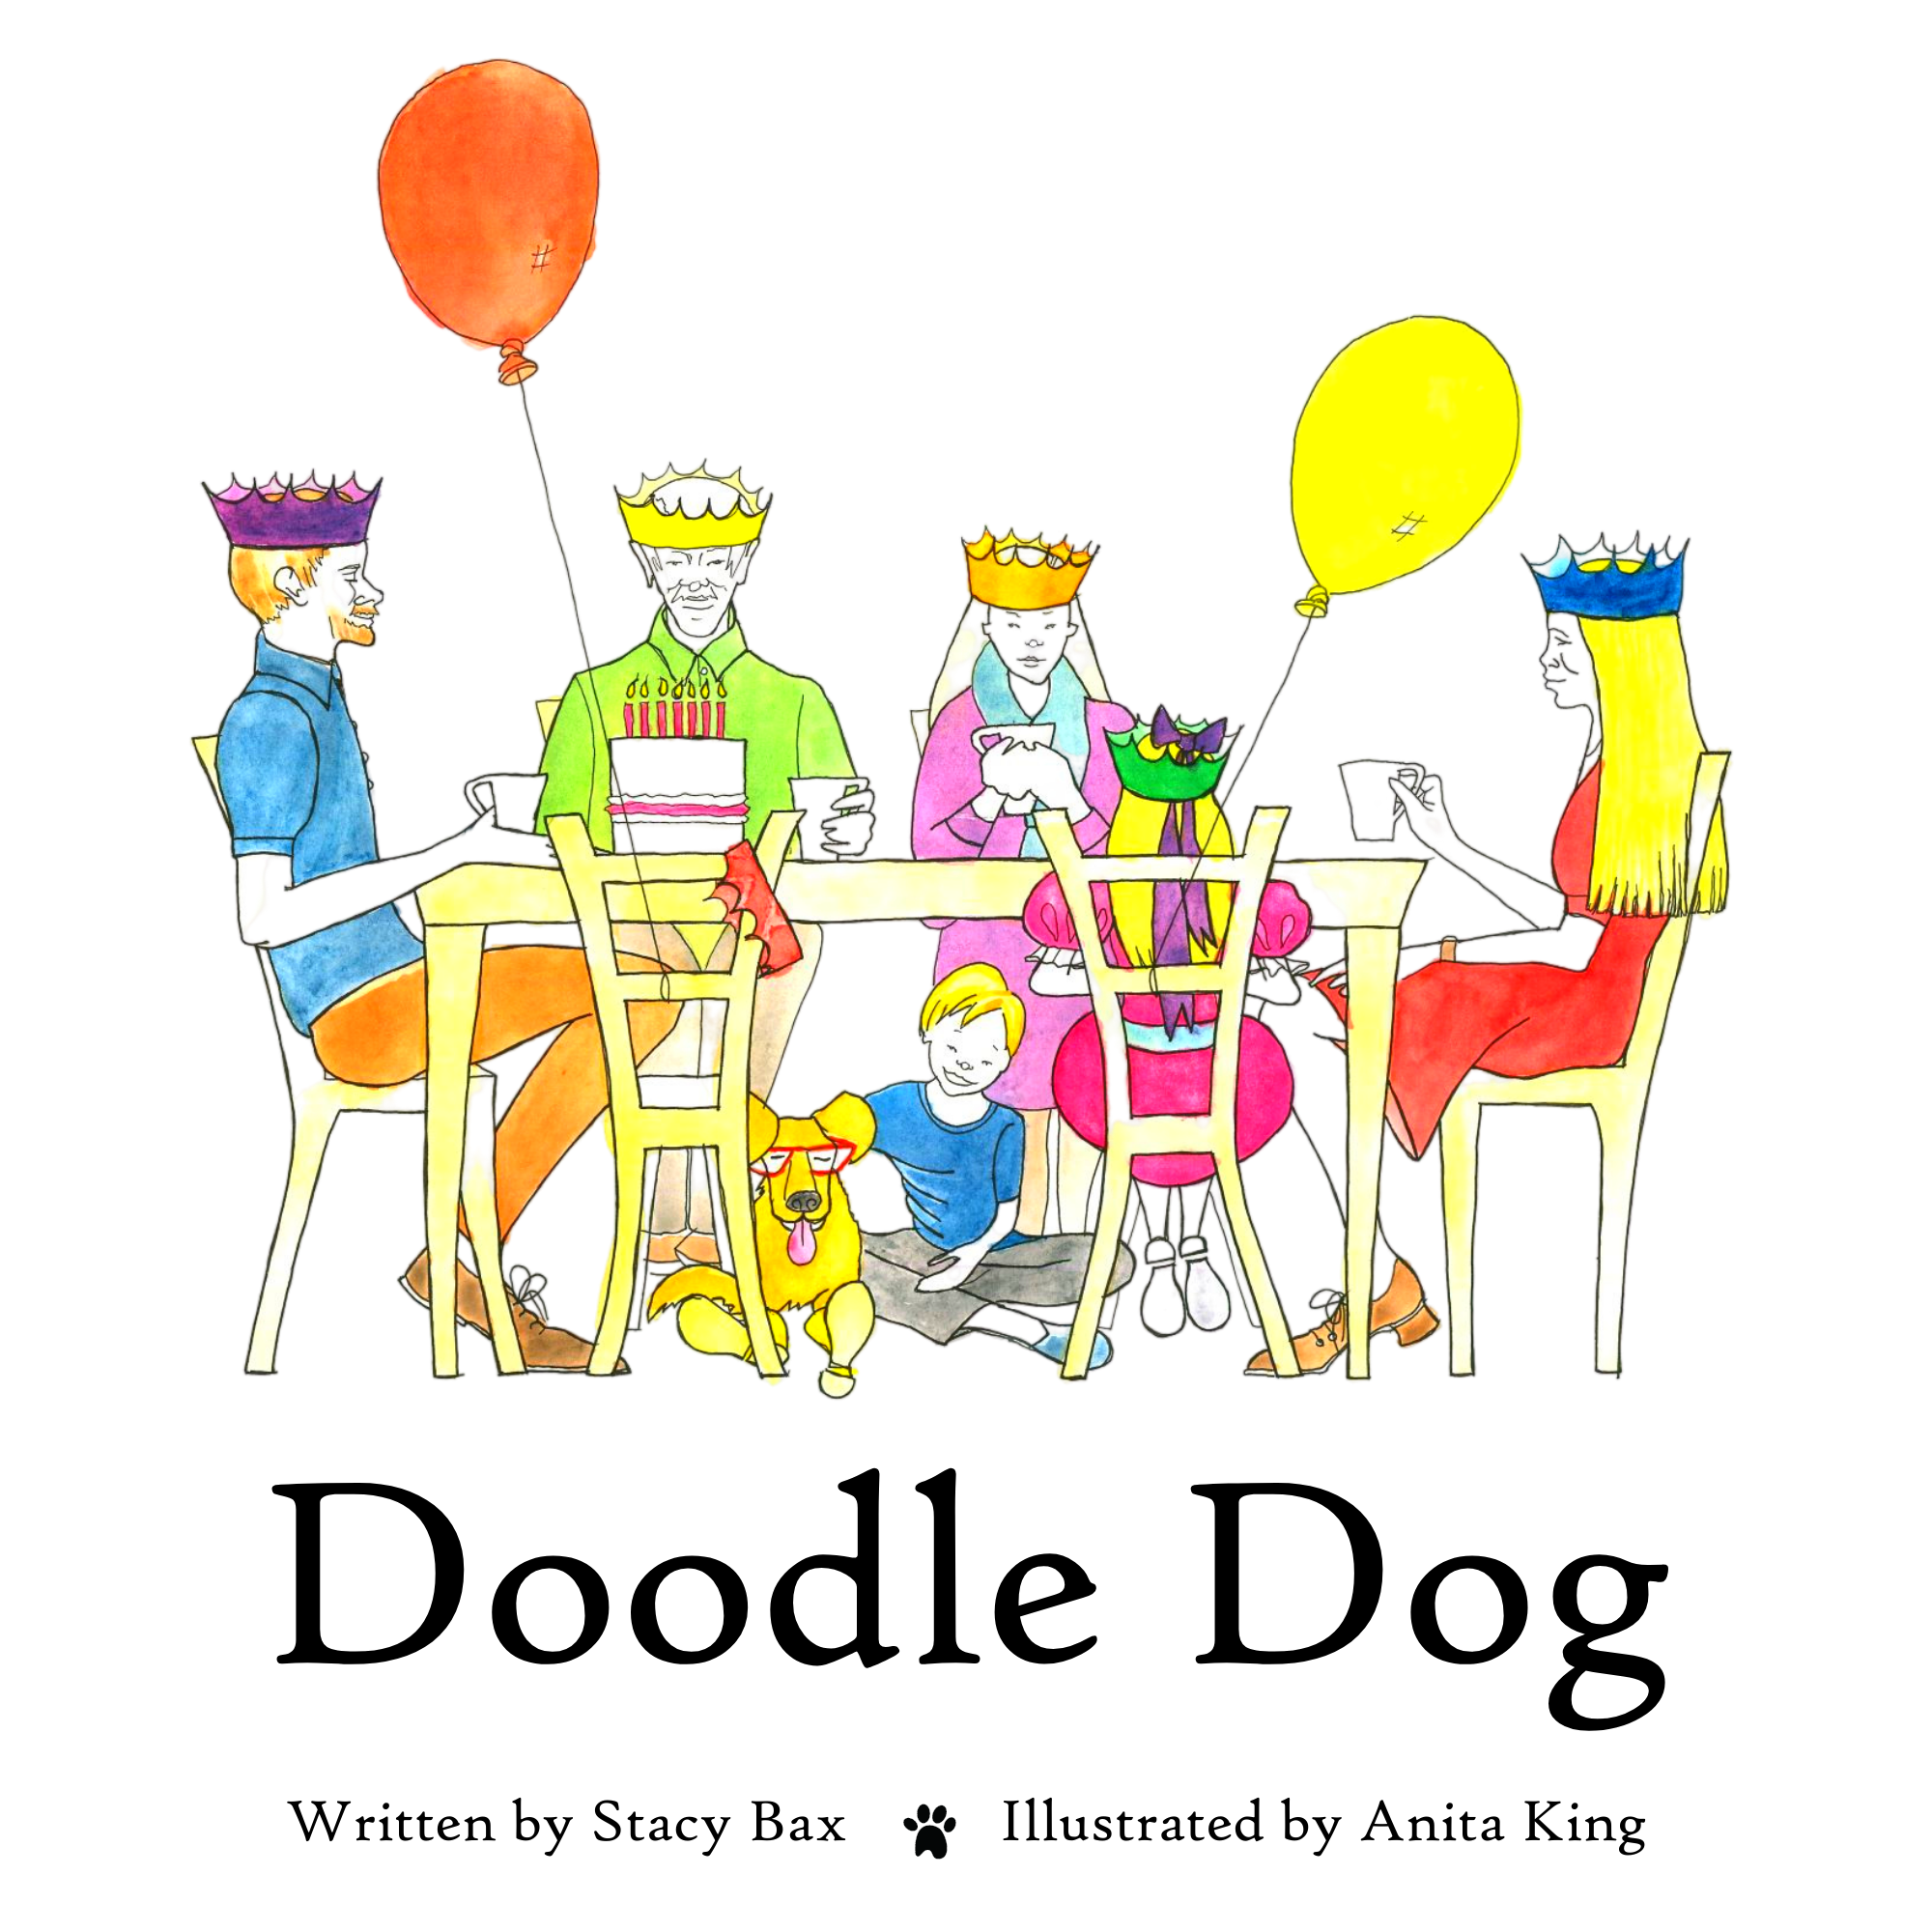 Doodle Dog by Stacy Bax and Anita King